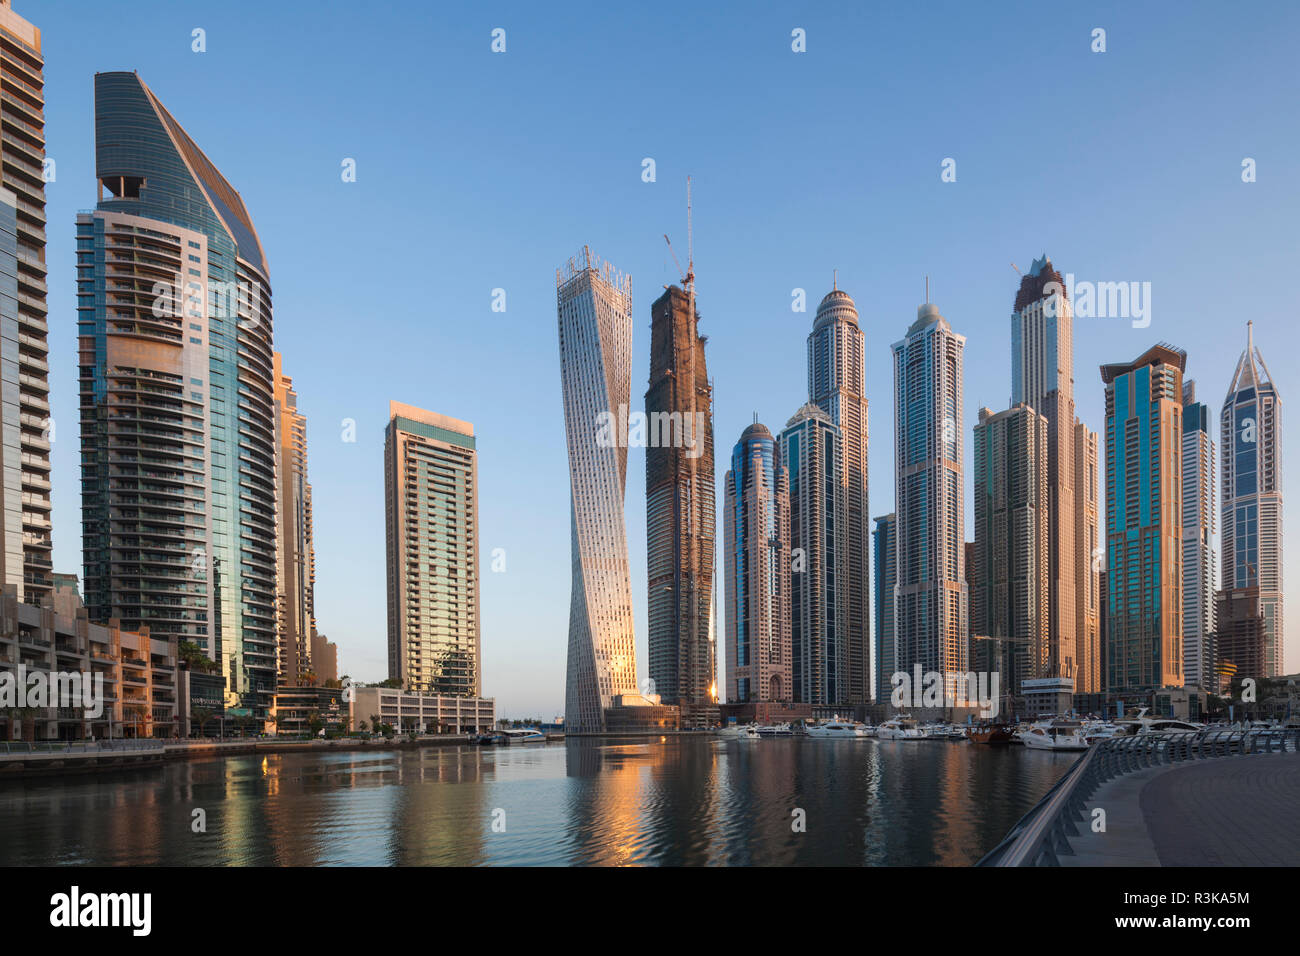 UAE, Dubai Marina high-rise buildings including the twisted Cayan Tower - Stock Image